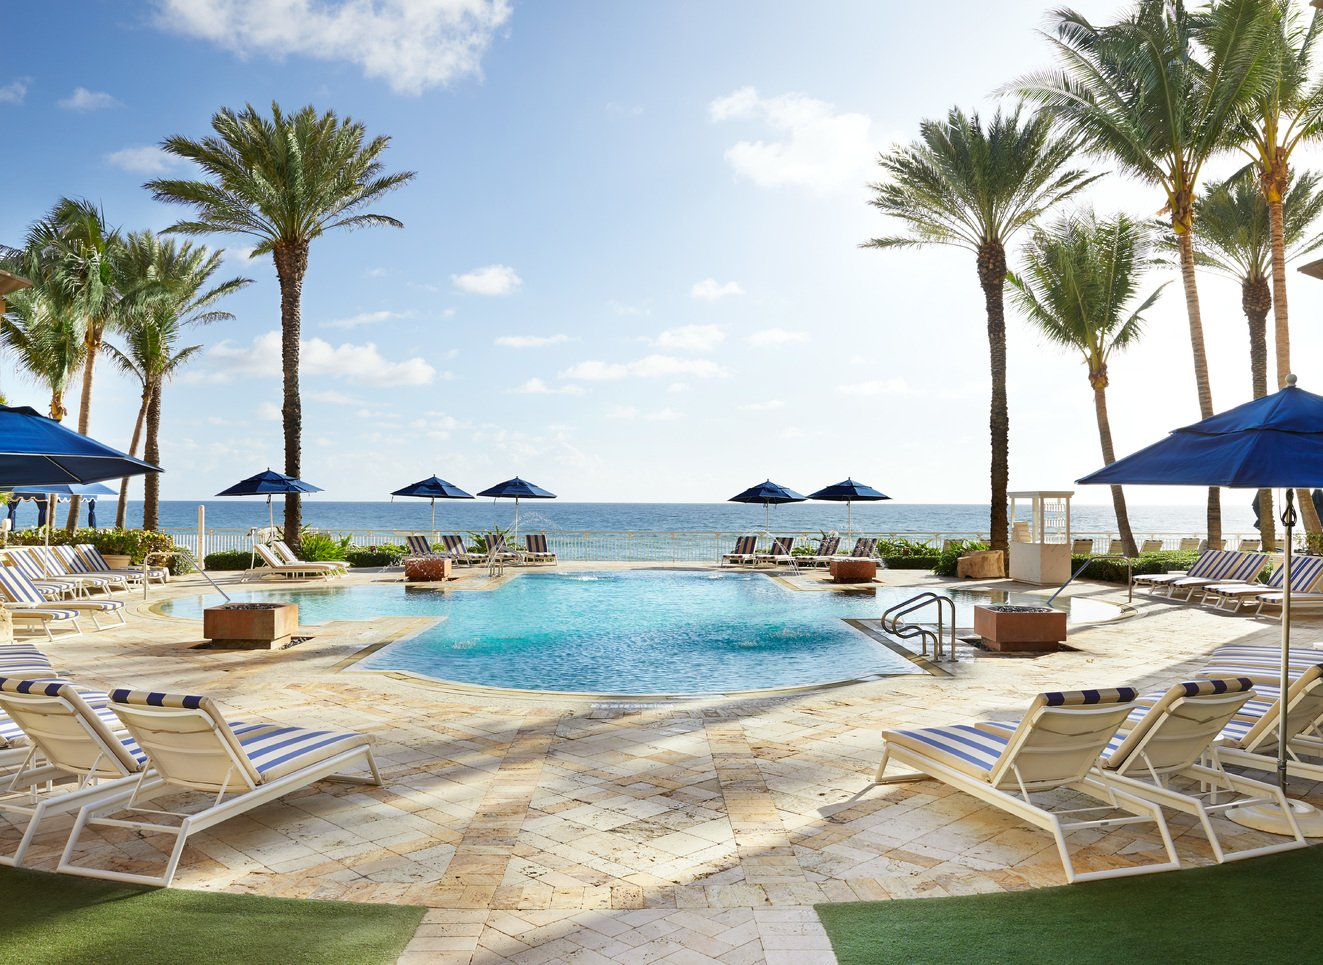 The 8 Best Boutique Hotels in Palm Beach, Florida